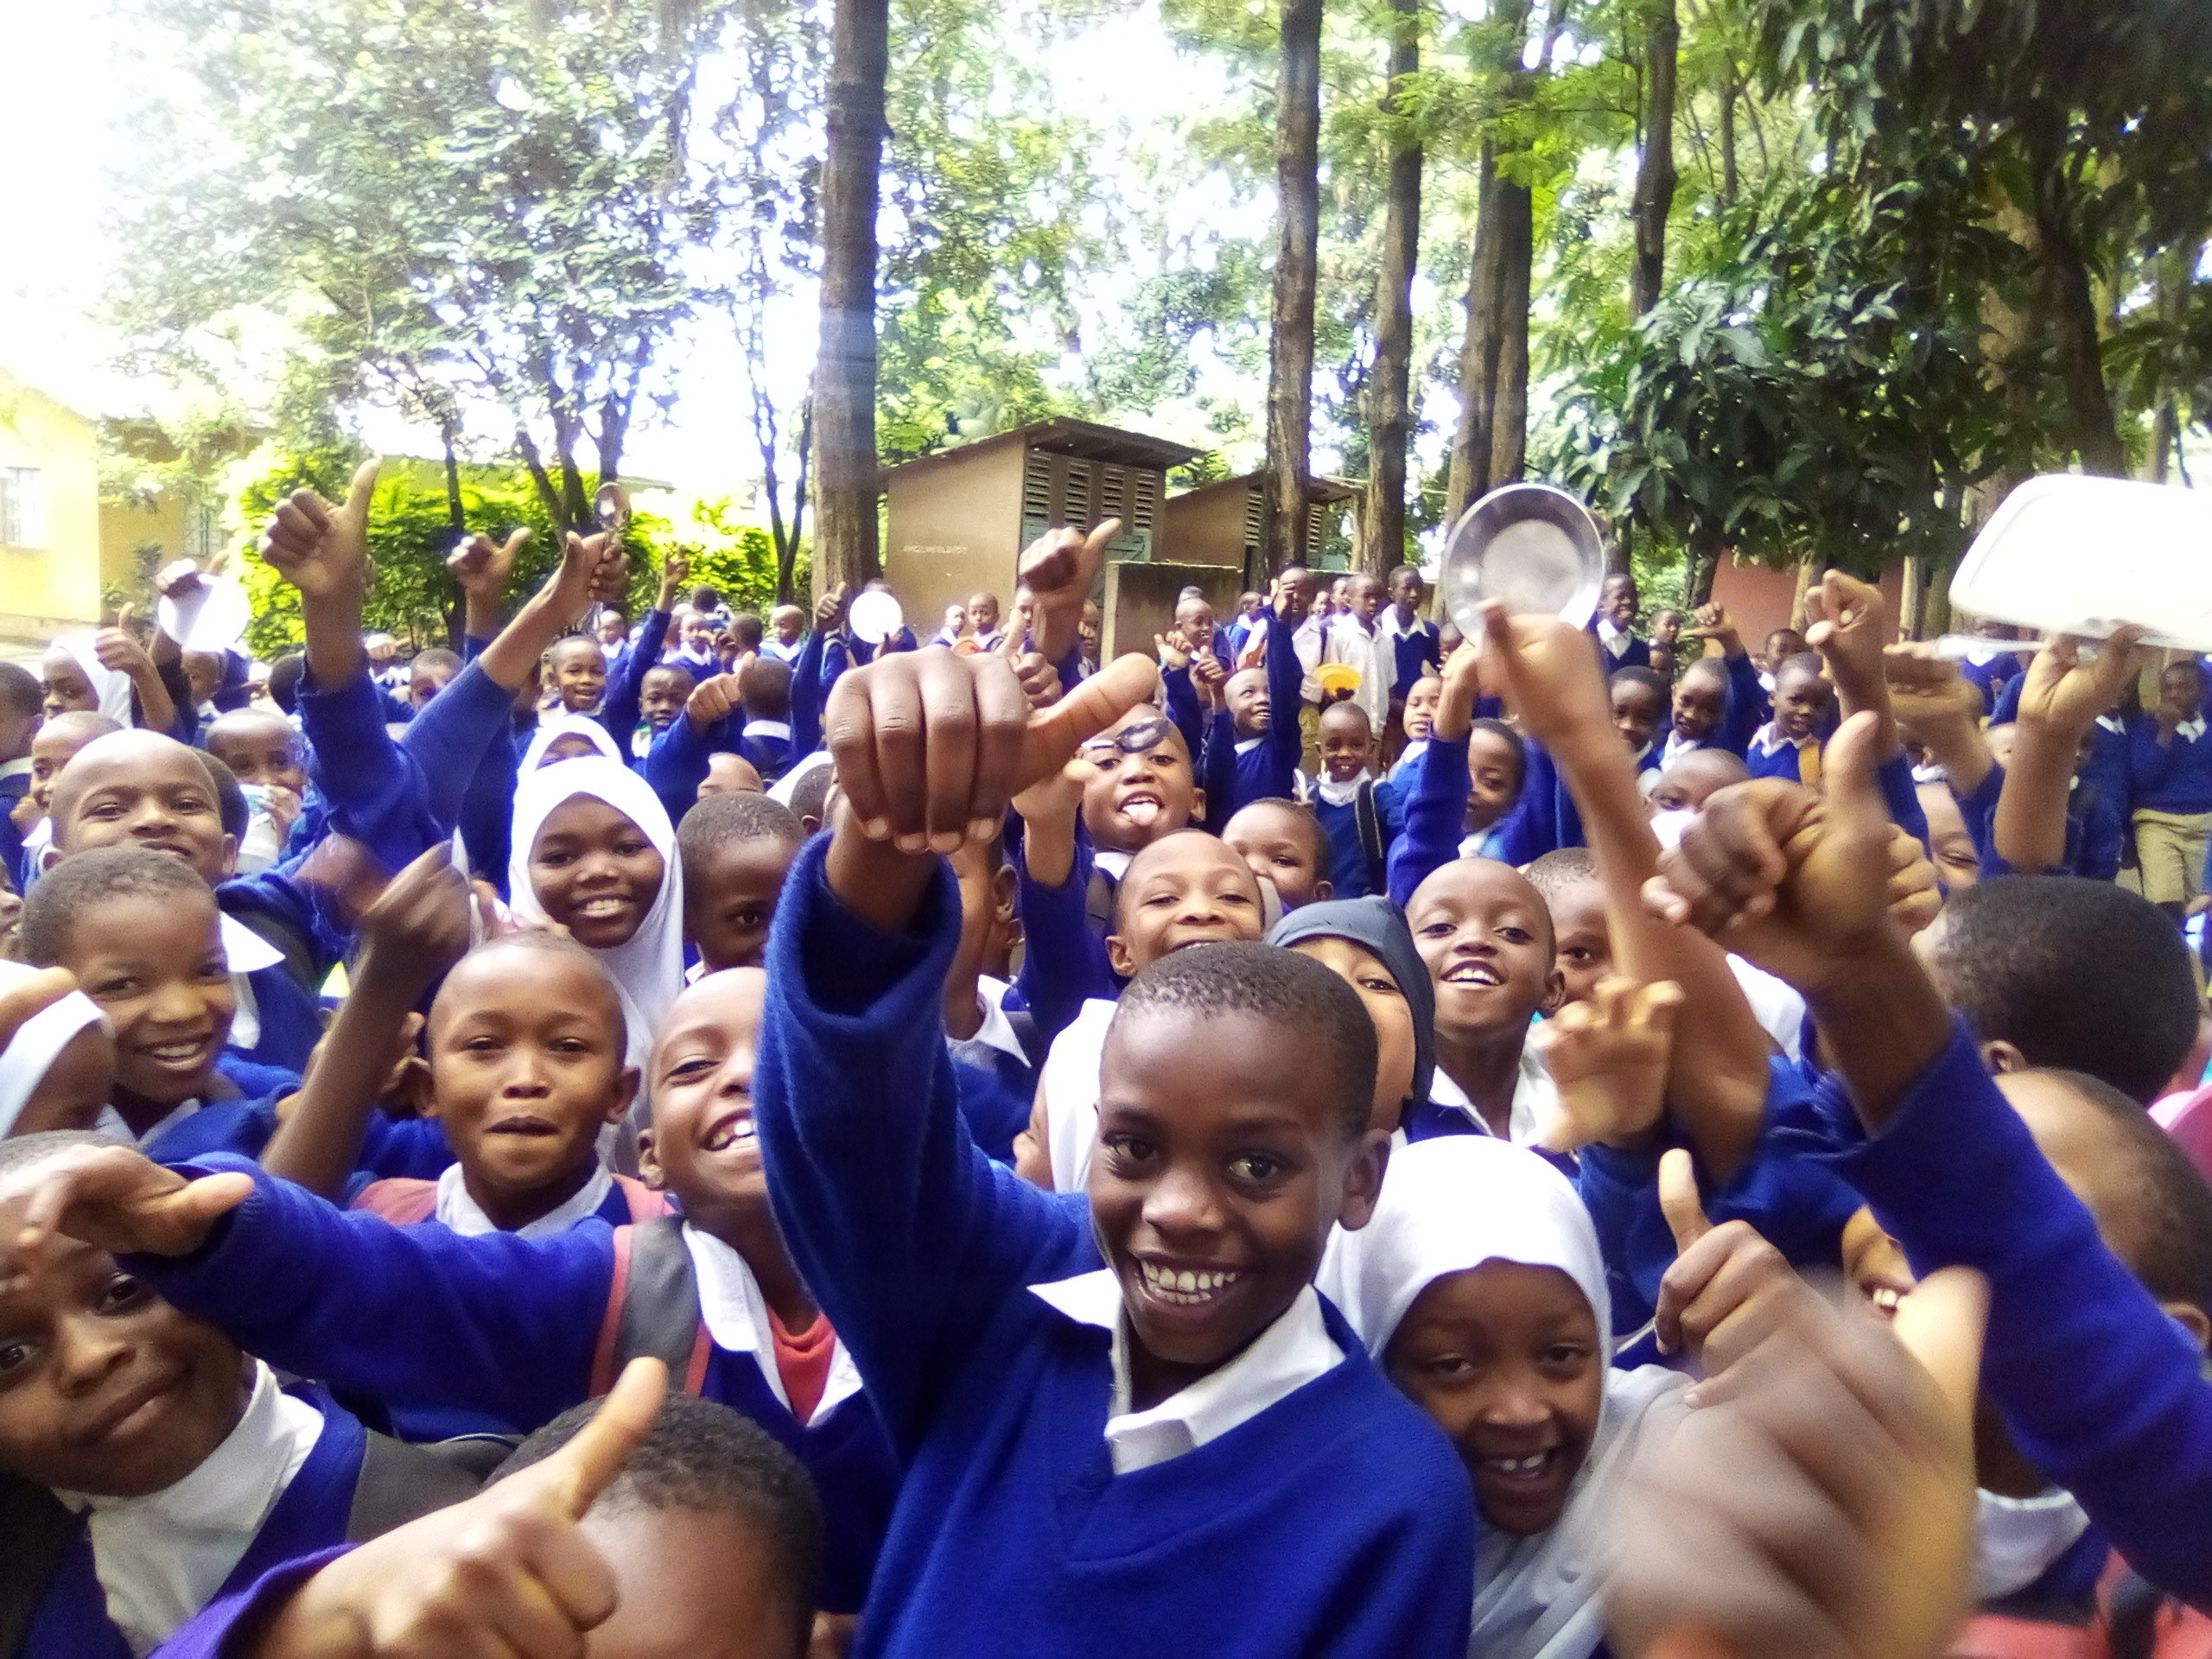 https://www.waterforlife.nl/files/visuals/arusha-school.jpeg